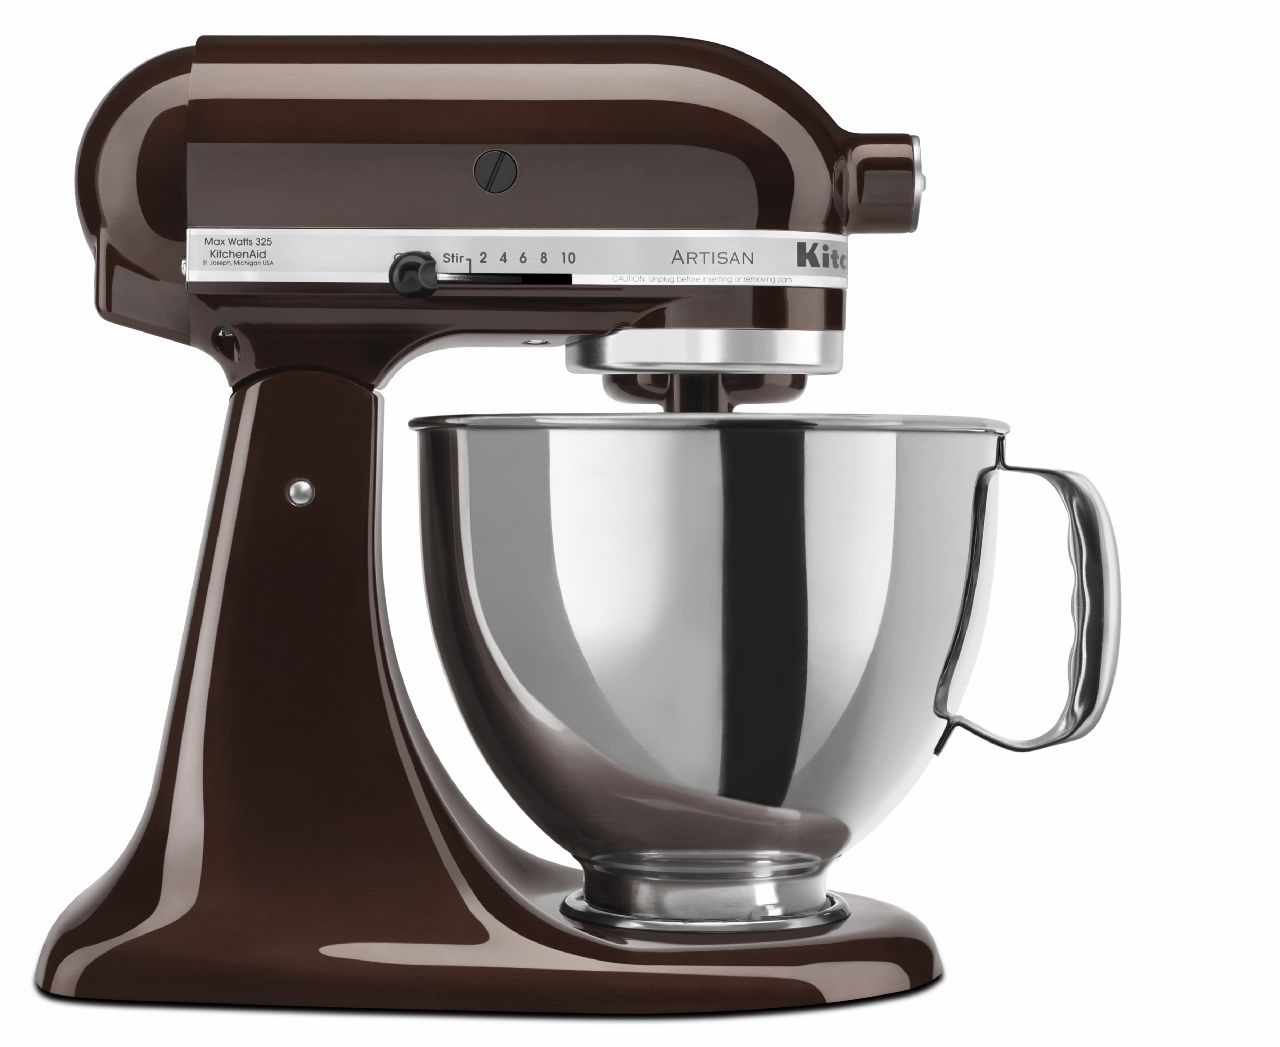 kitchenaid artisan series 5 qt tilt head stand mixer refurbished rrk150 ebay. Black Bedroom Furniture Sets. Home Design Ideas